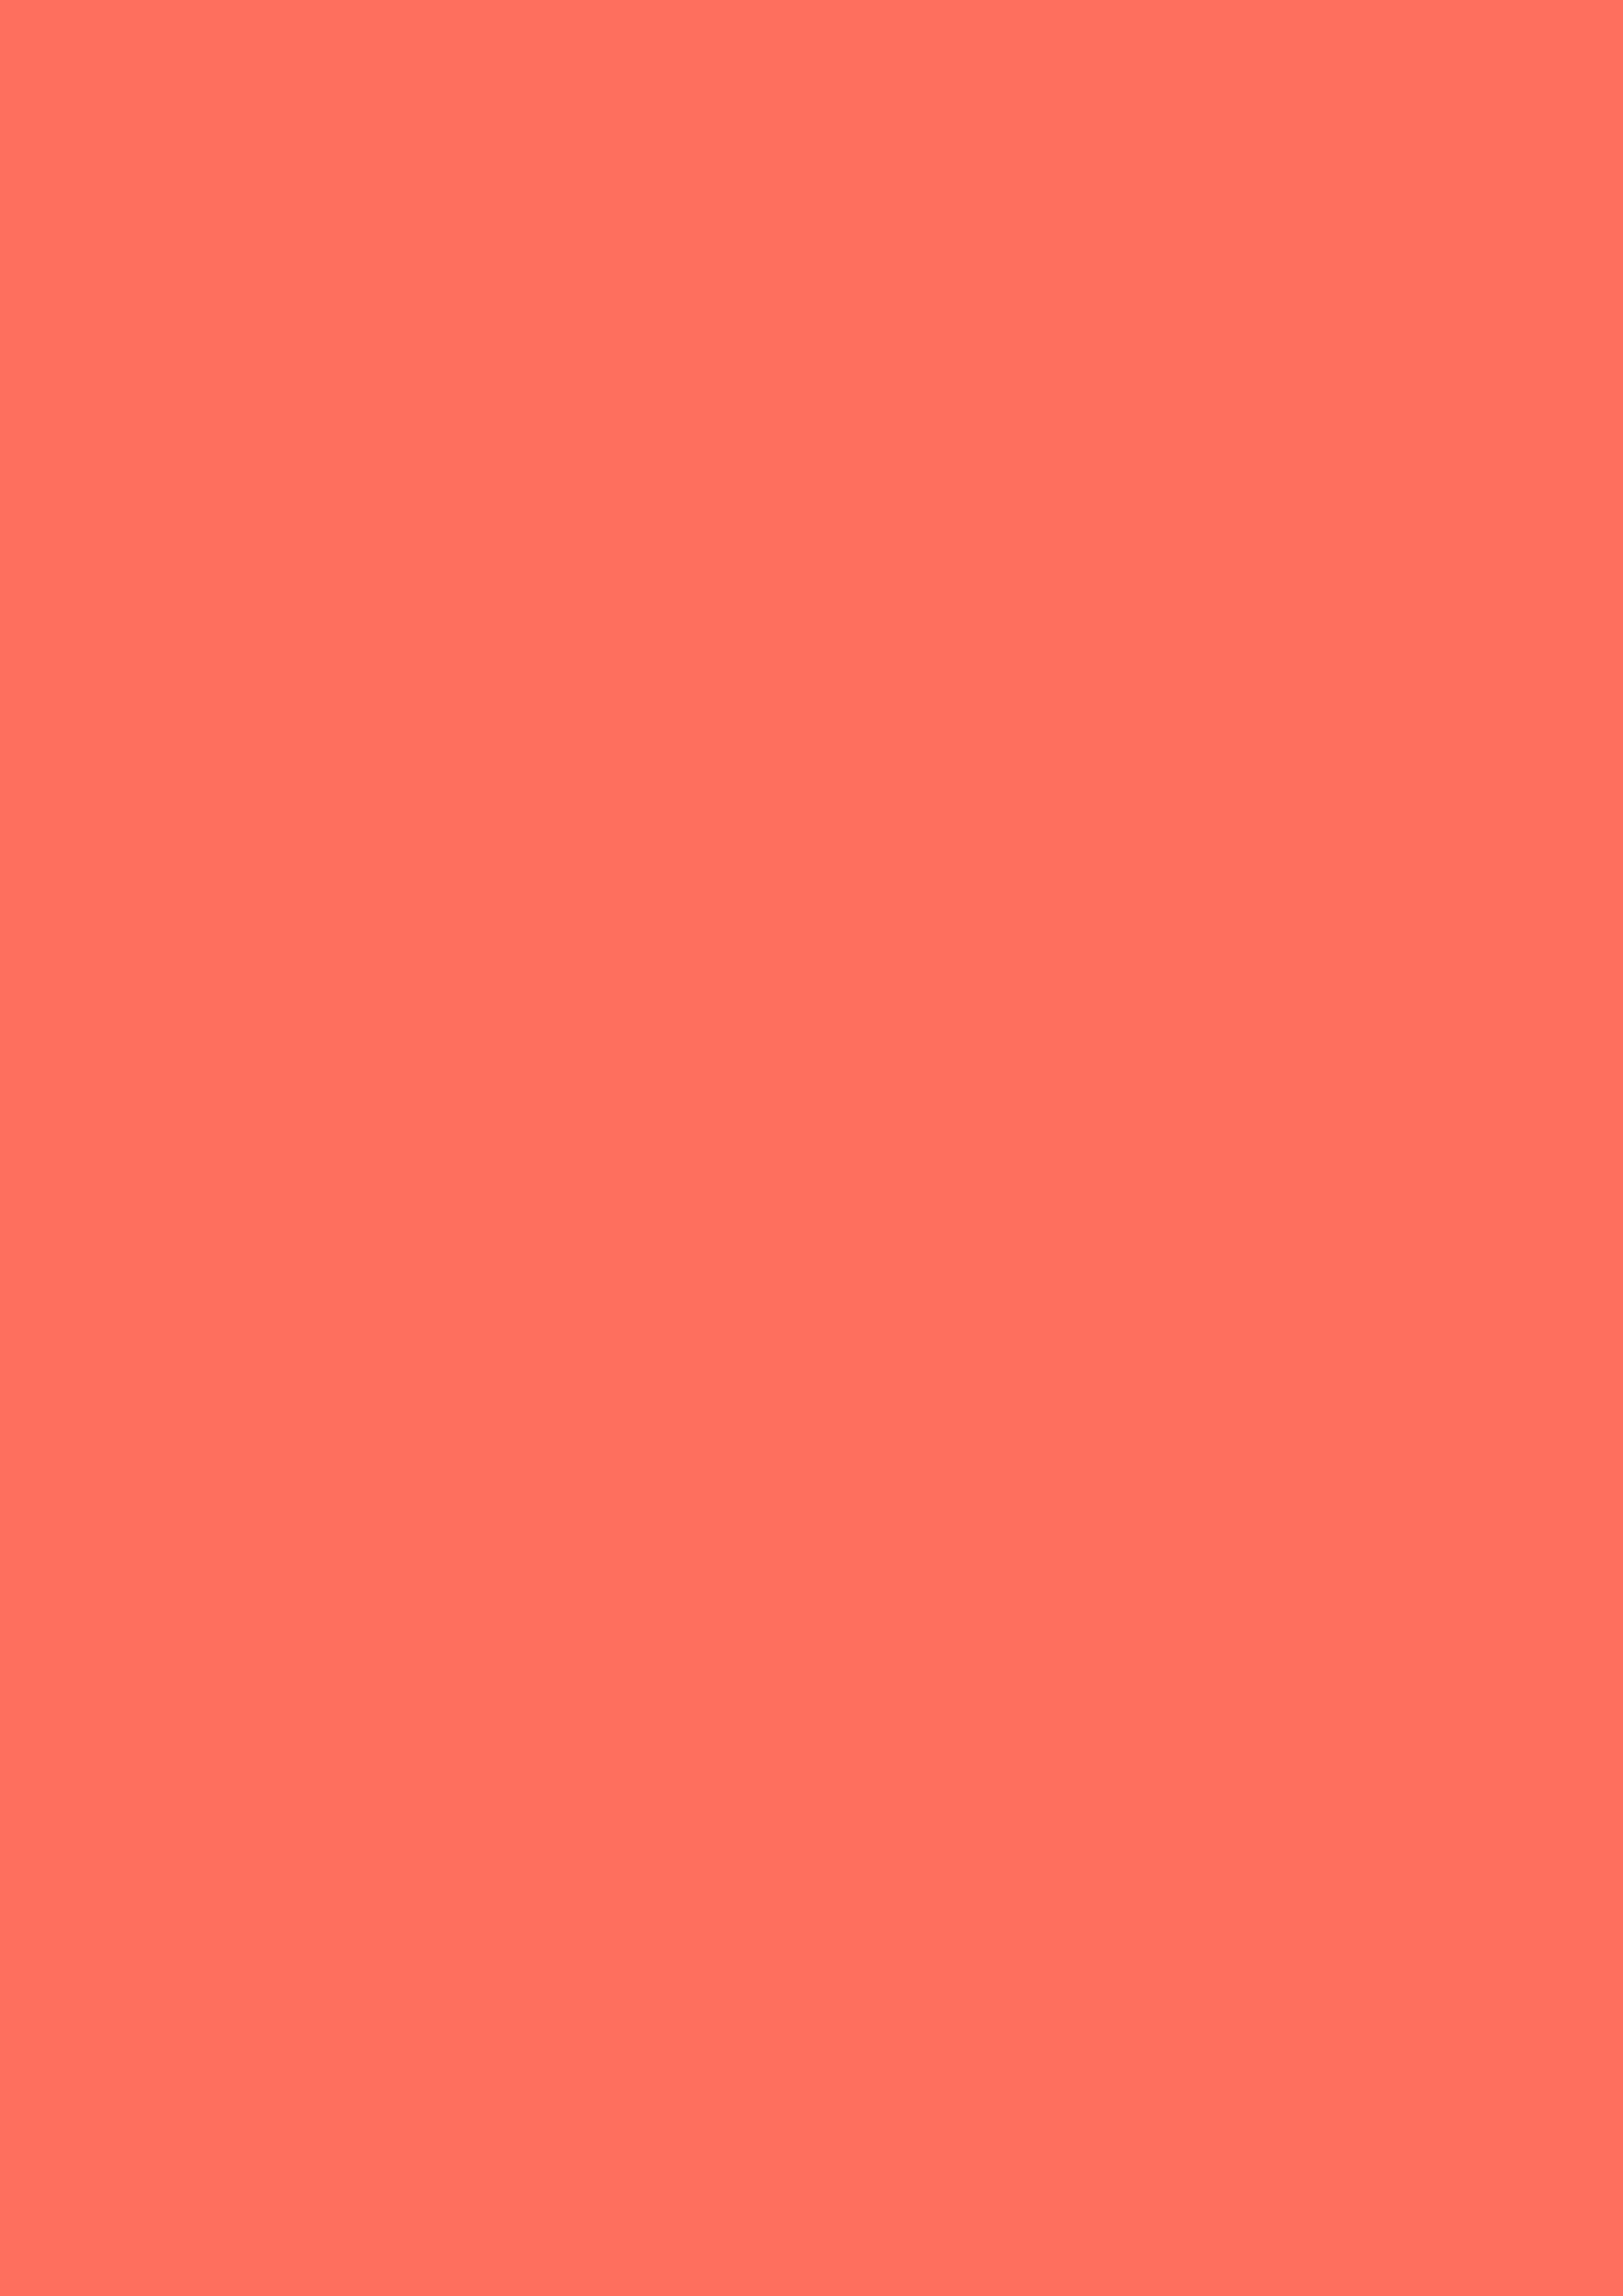 2480x3508 Bittersweet Solid Color Background